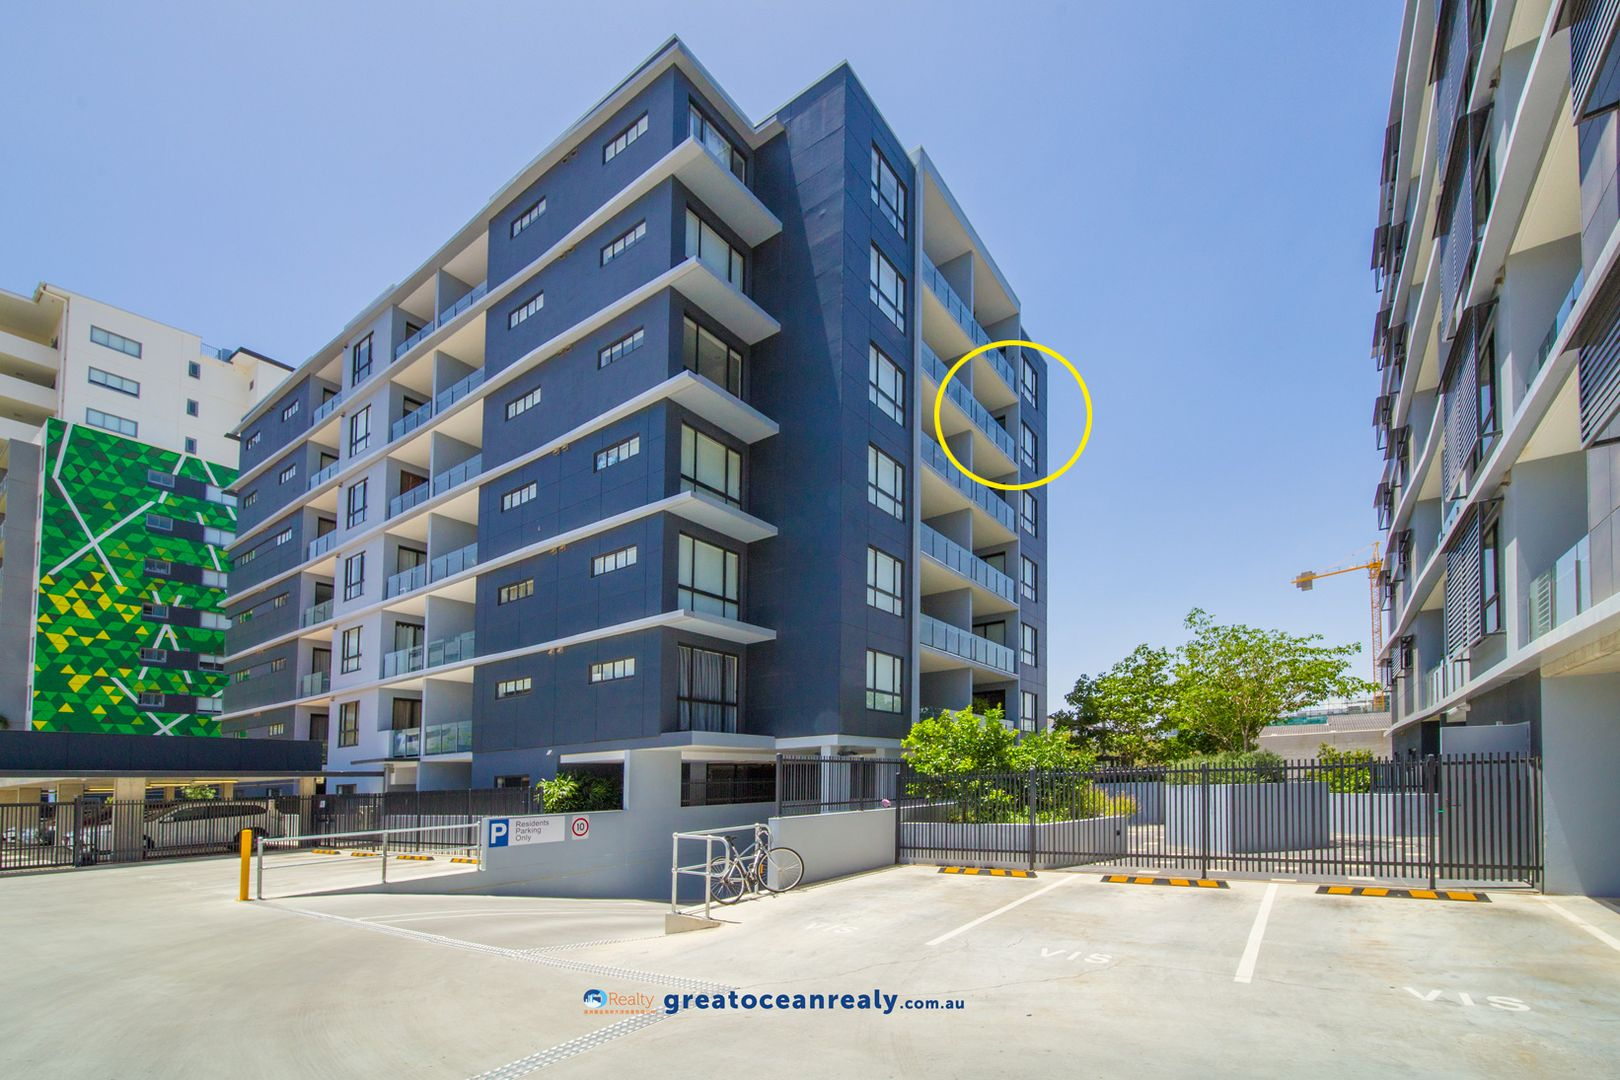 2507/35 Tondara Lane, West End QLD 4101, Image 0